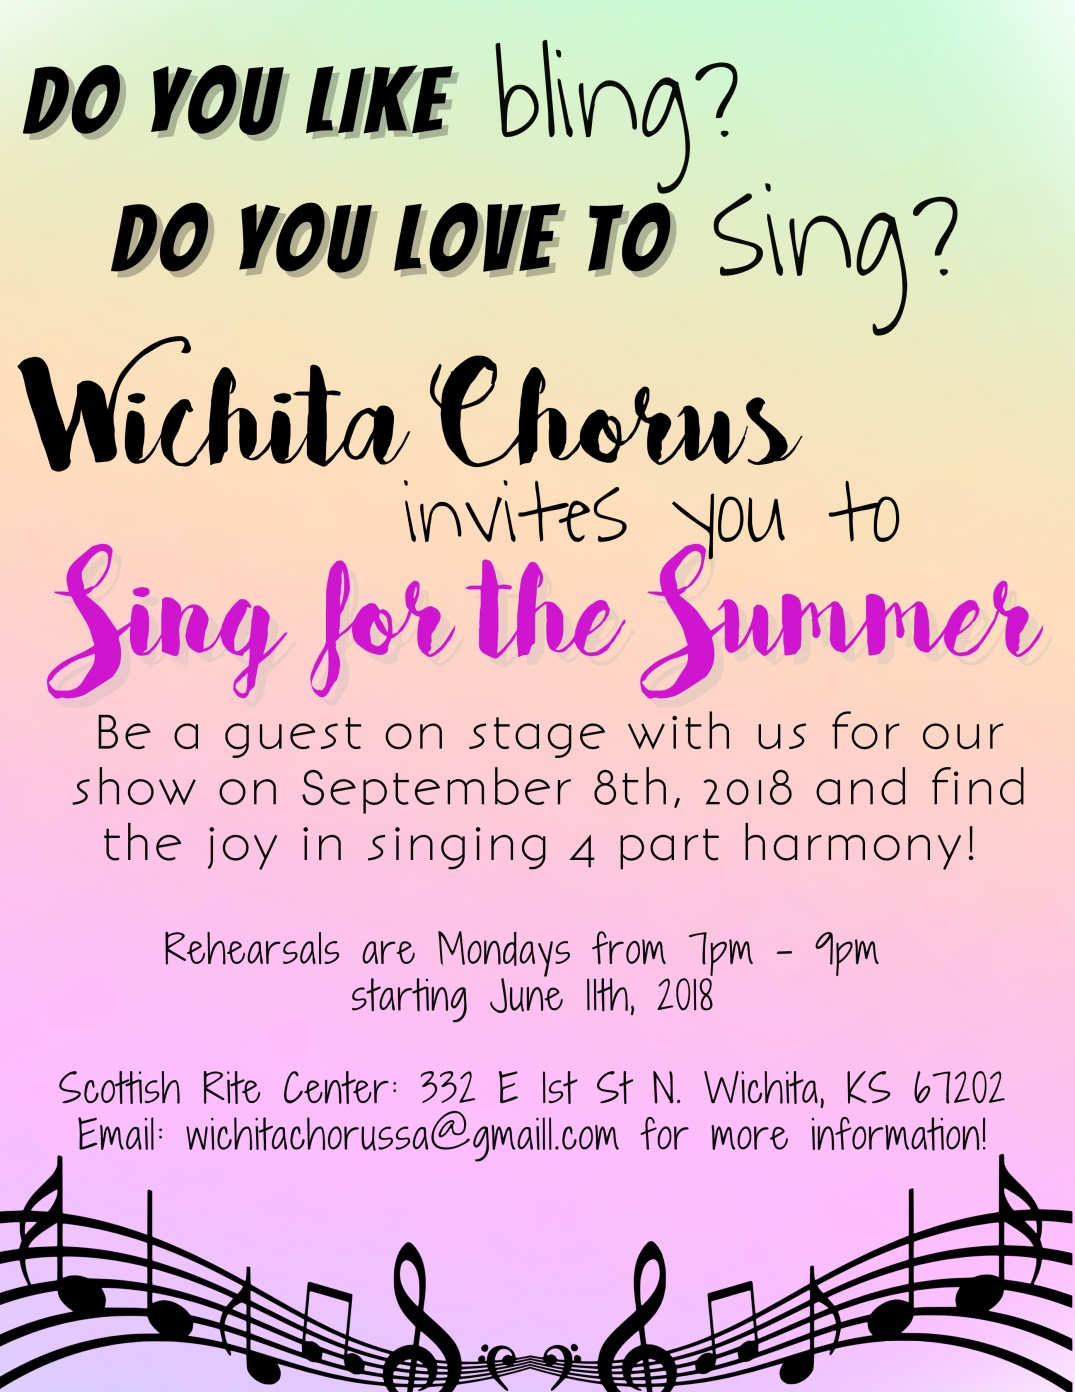 WCSA Sing for the Summer 2018 (no watermark)